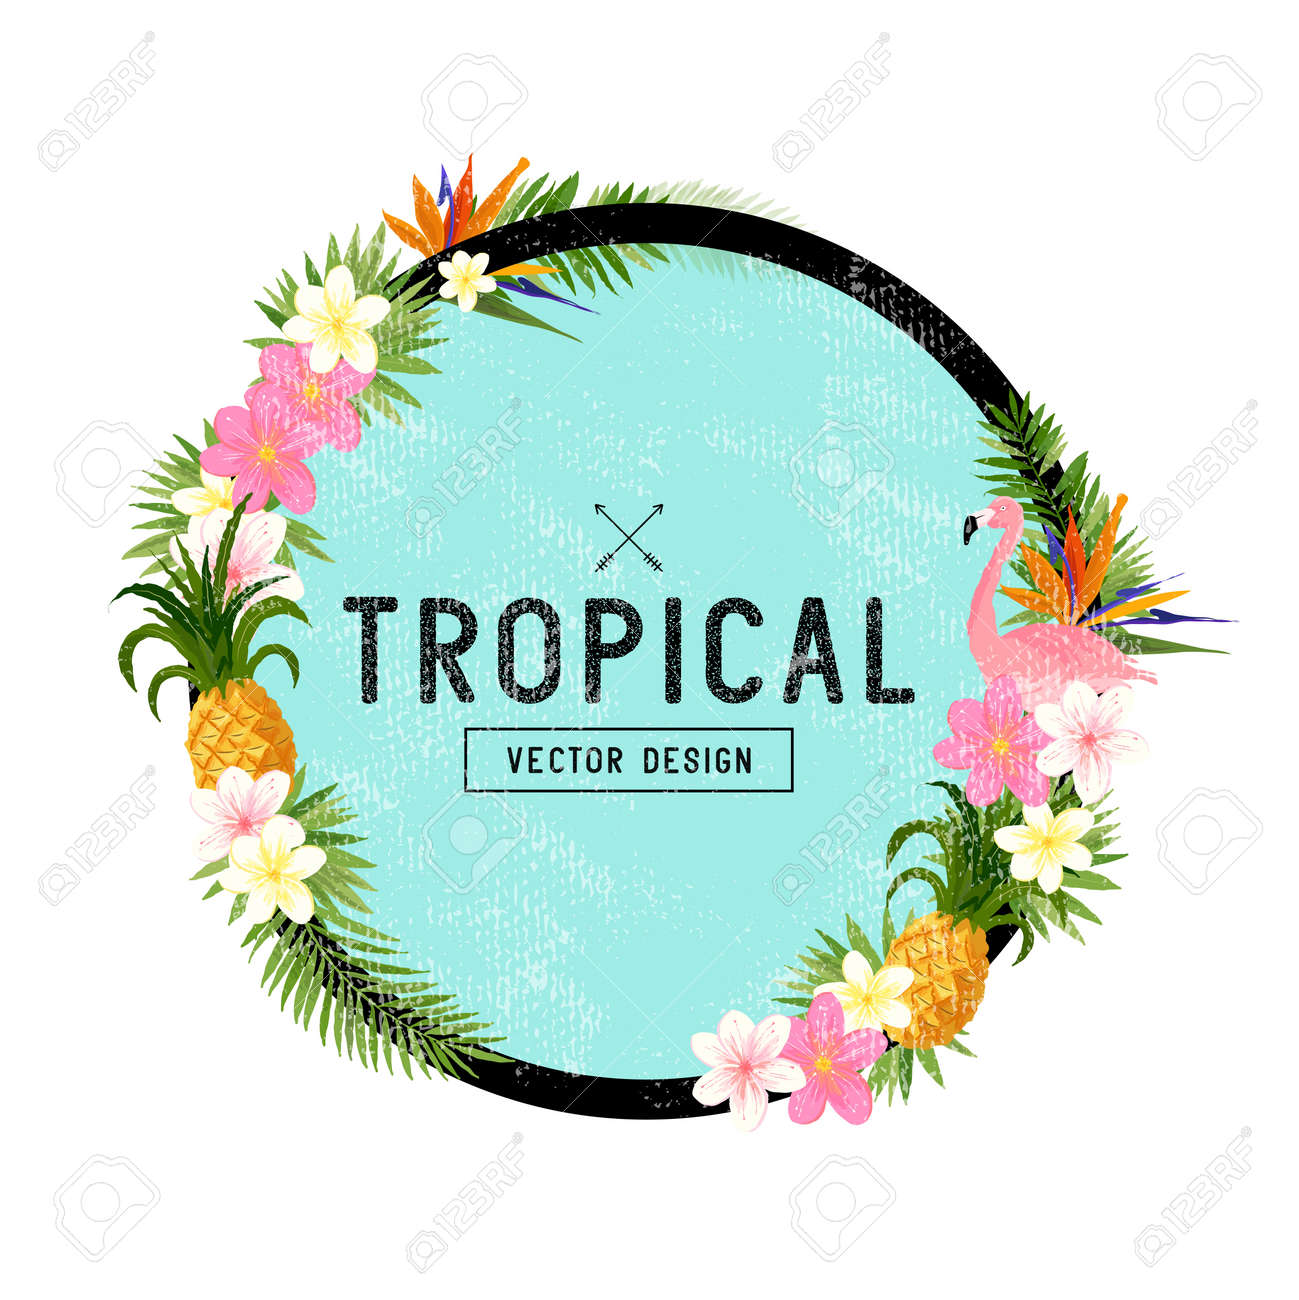 Tropical Border Design. tropical hand drawn elements including bird of paradise flower, flamingo bird and tropical floral elements. - 54312285